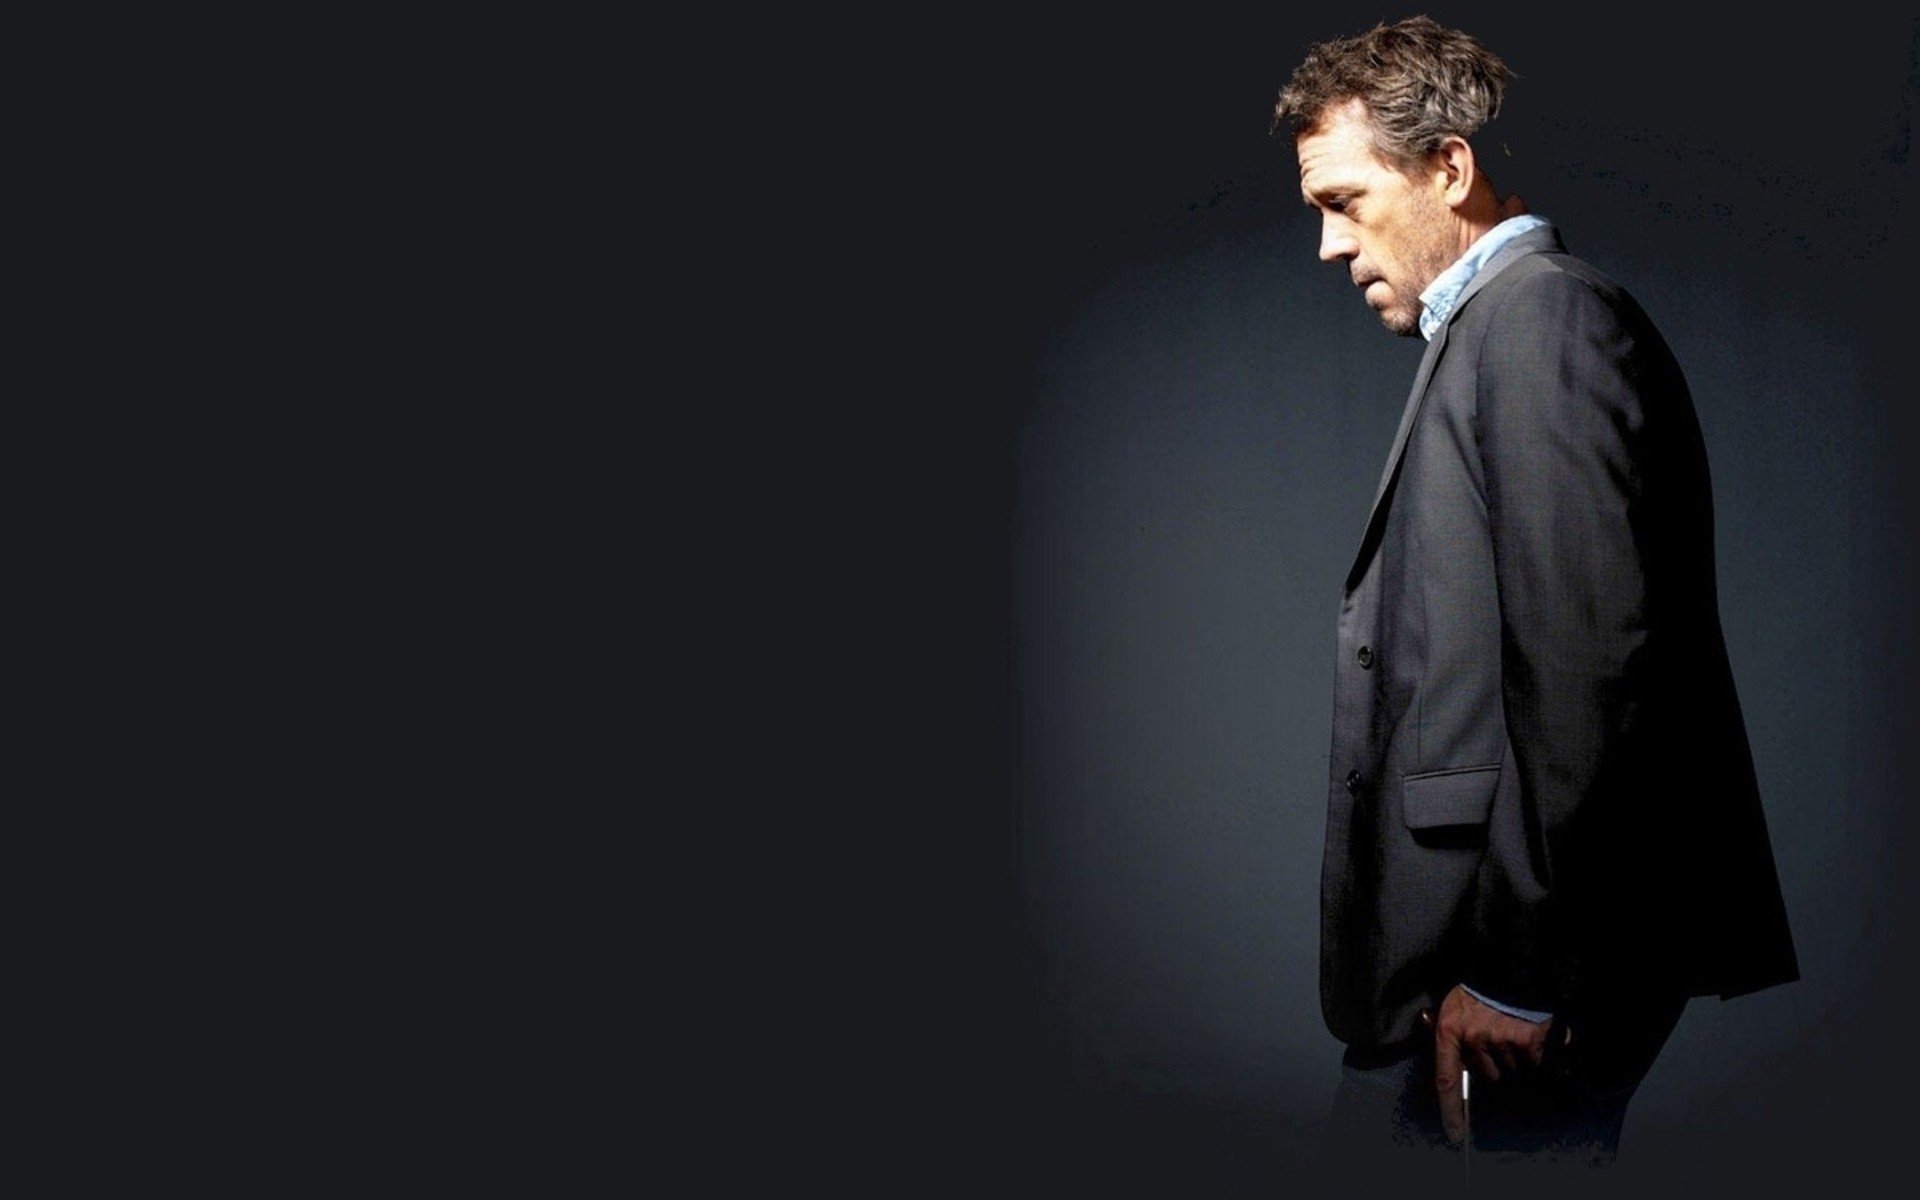 Dr House wallpaper 9502 1920x1200